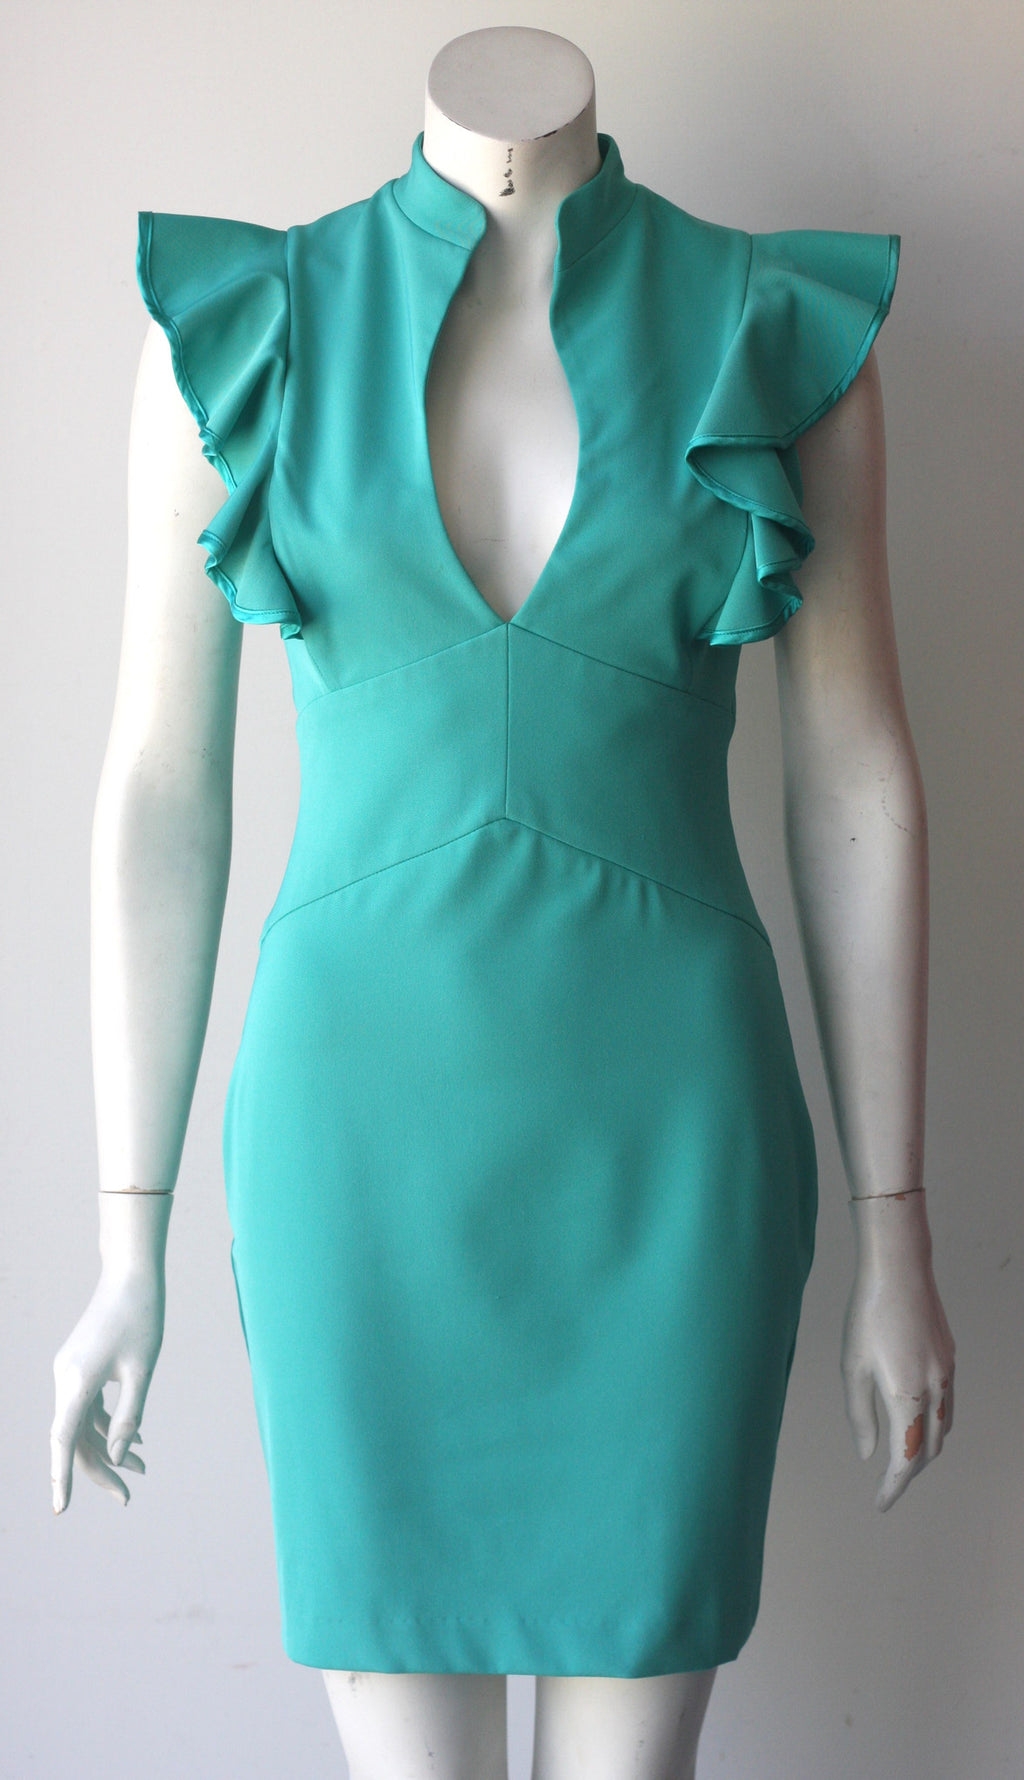 Black Halo Green Key Hole Ruffle Sheath Dress - Joyce's Closet  - 1